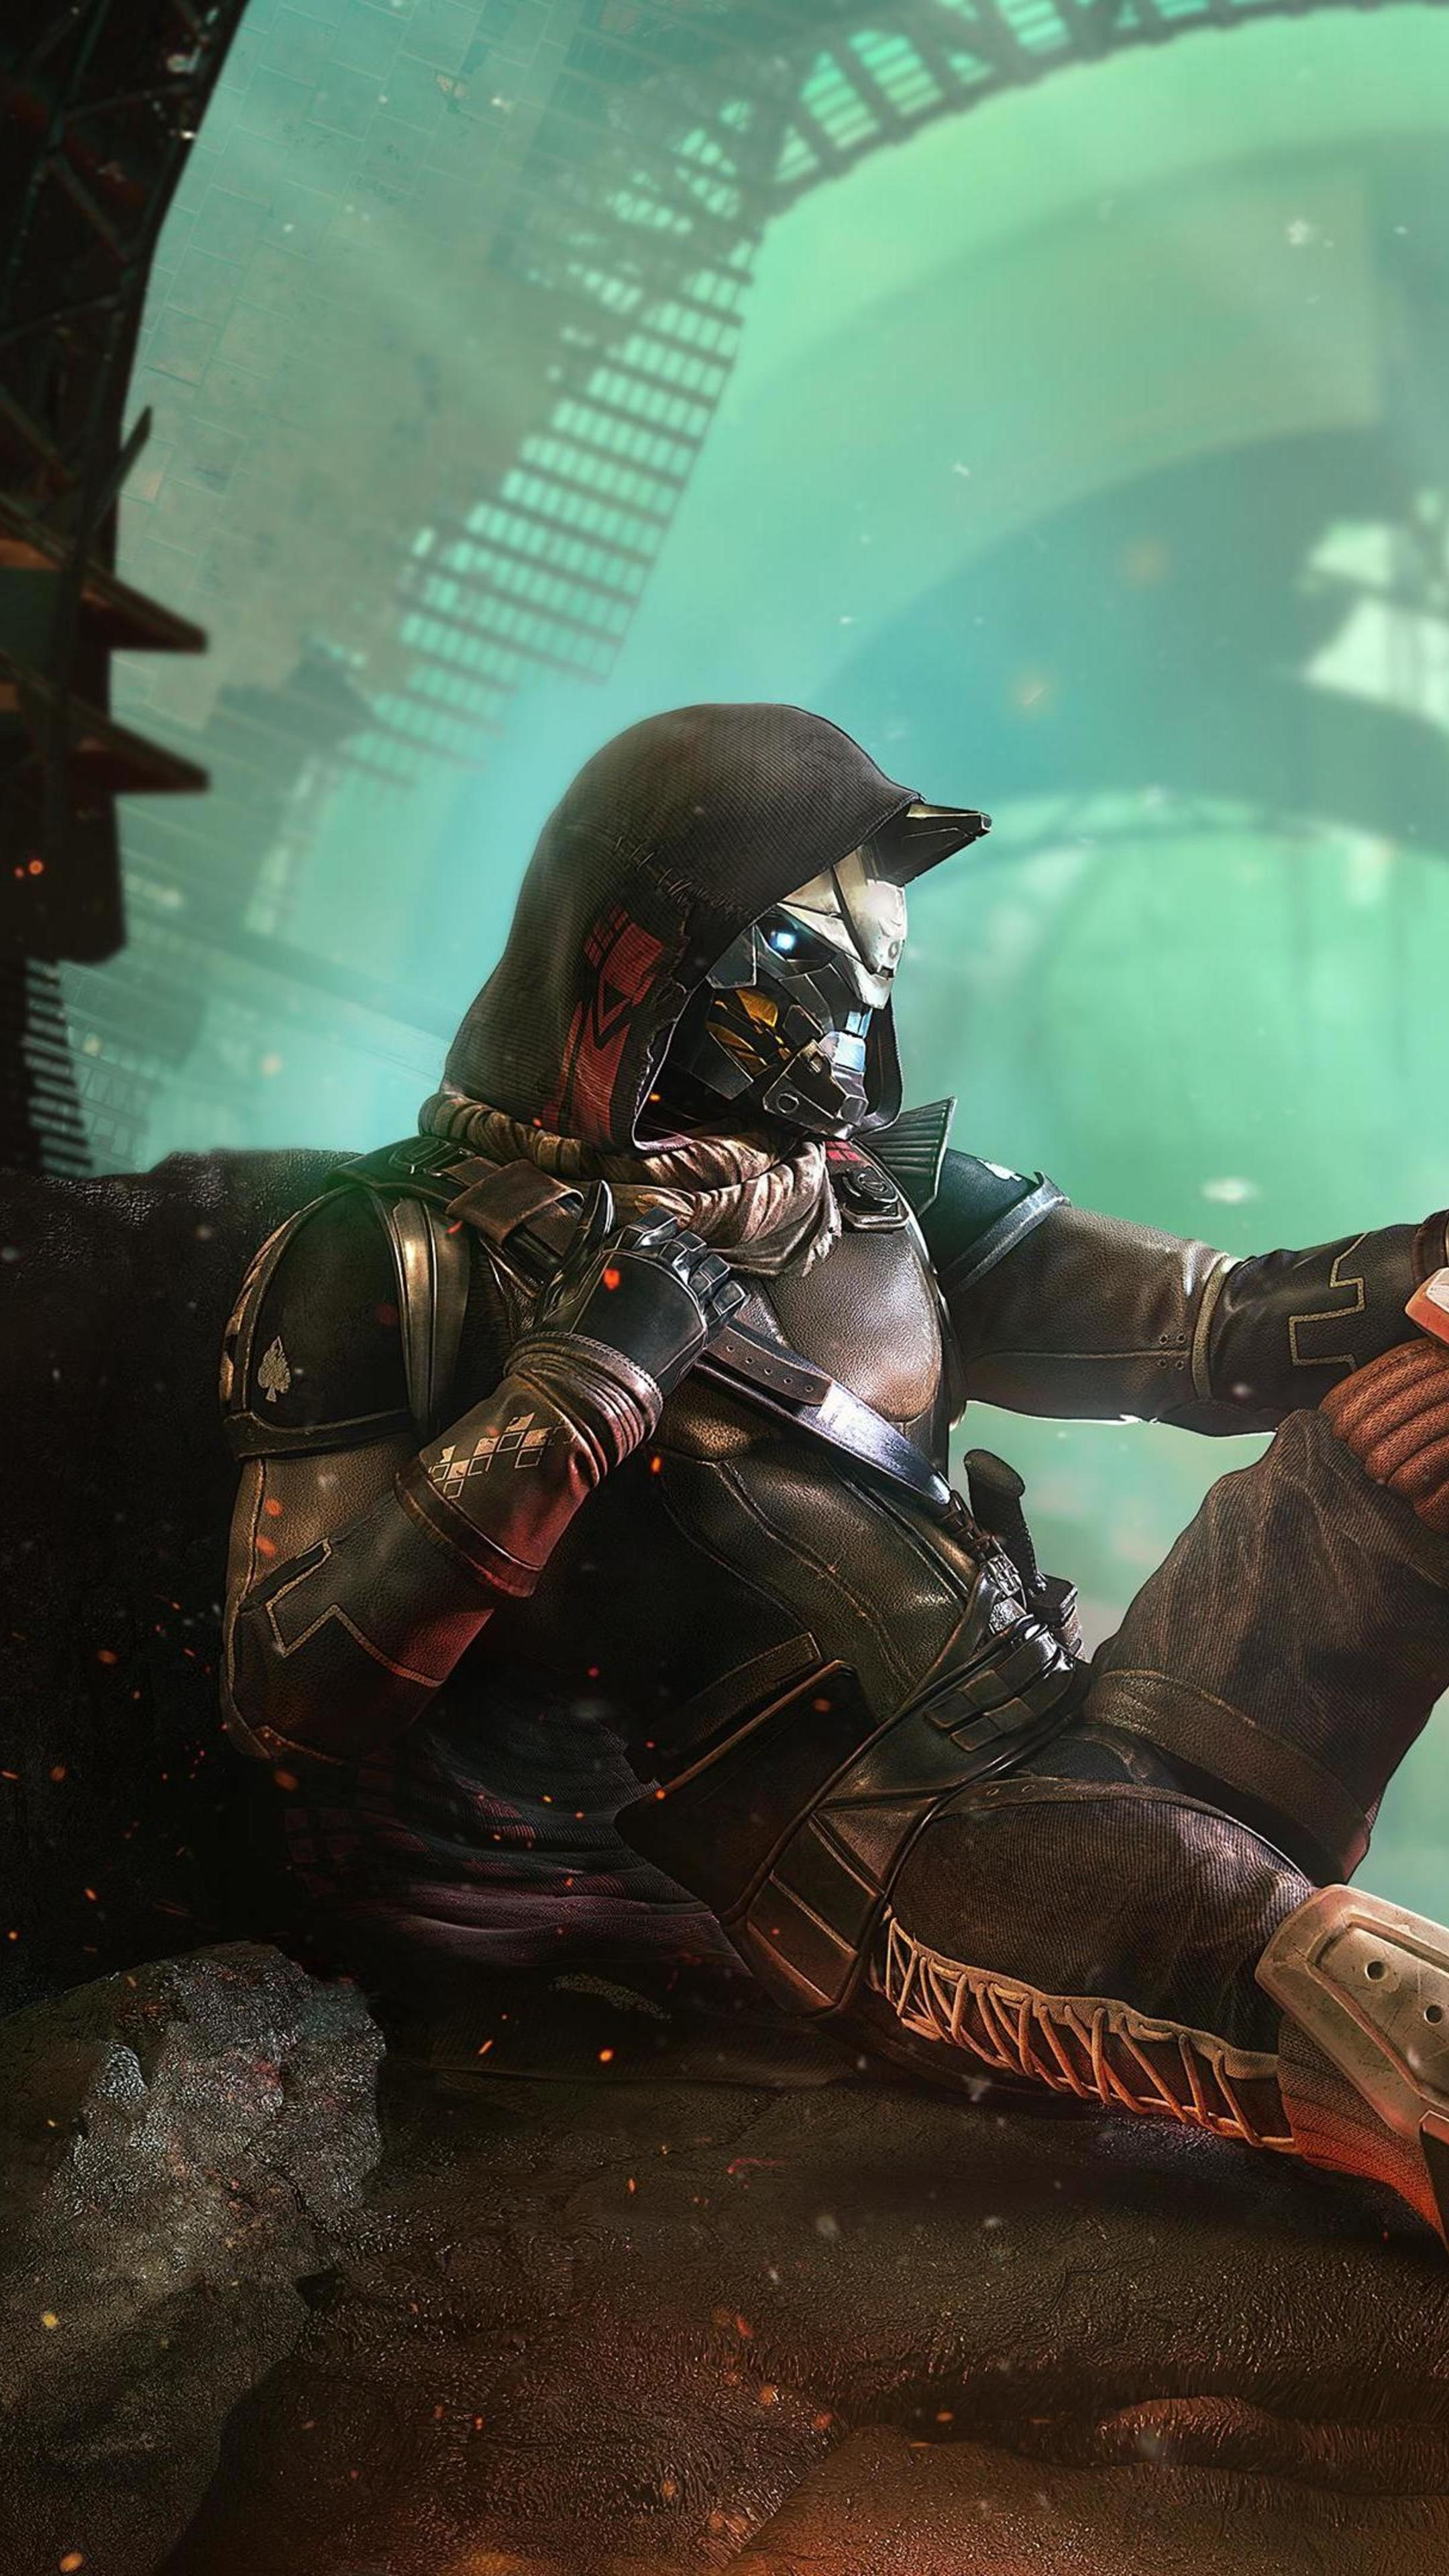 Destiny 2 Cayde 6 Nw 2160x3840 Jpg 2 160 3 840 Pixels Destiny Comic Destiny Game Destiny Bungie